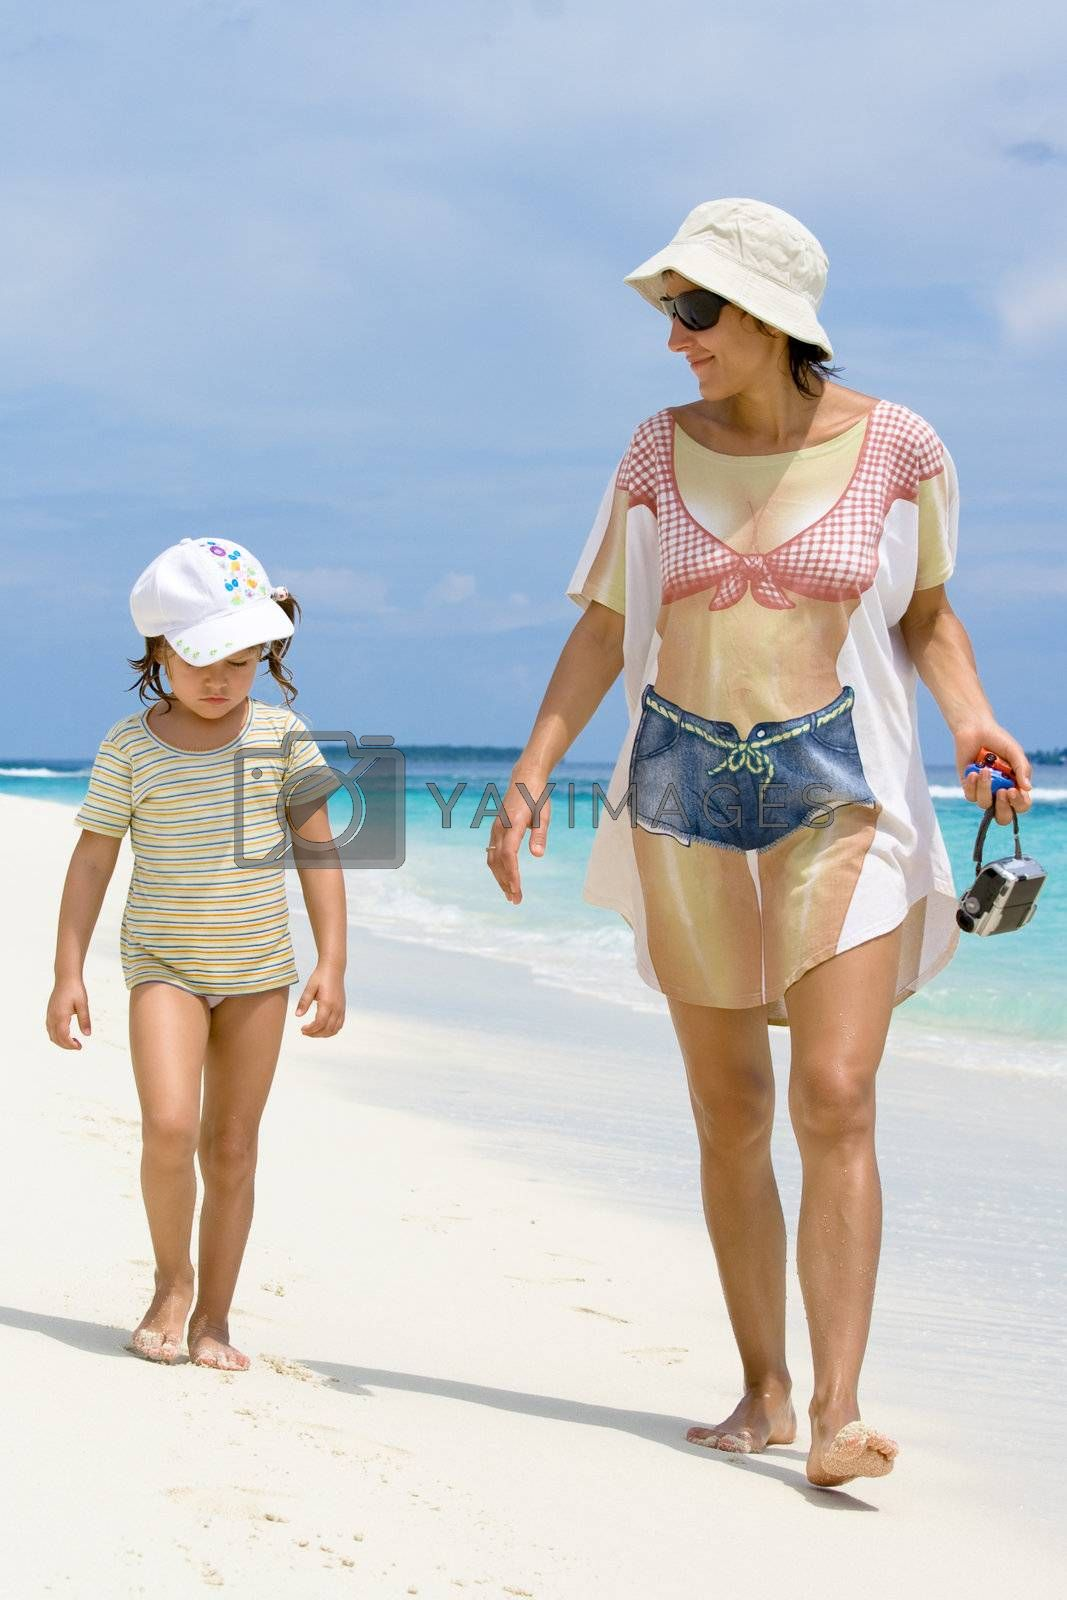 Vacation it is time to chat with baby walking on the beach, it is time to relax and make family closer